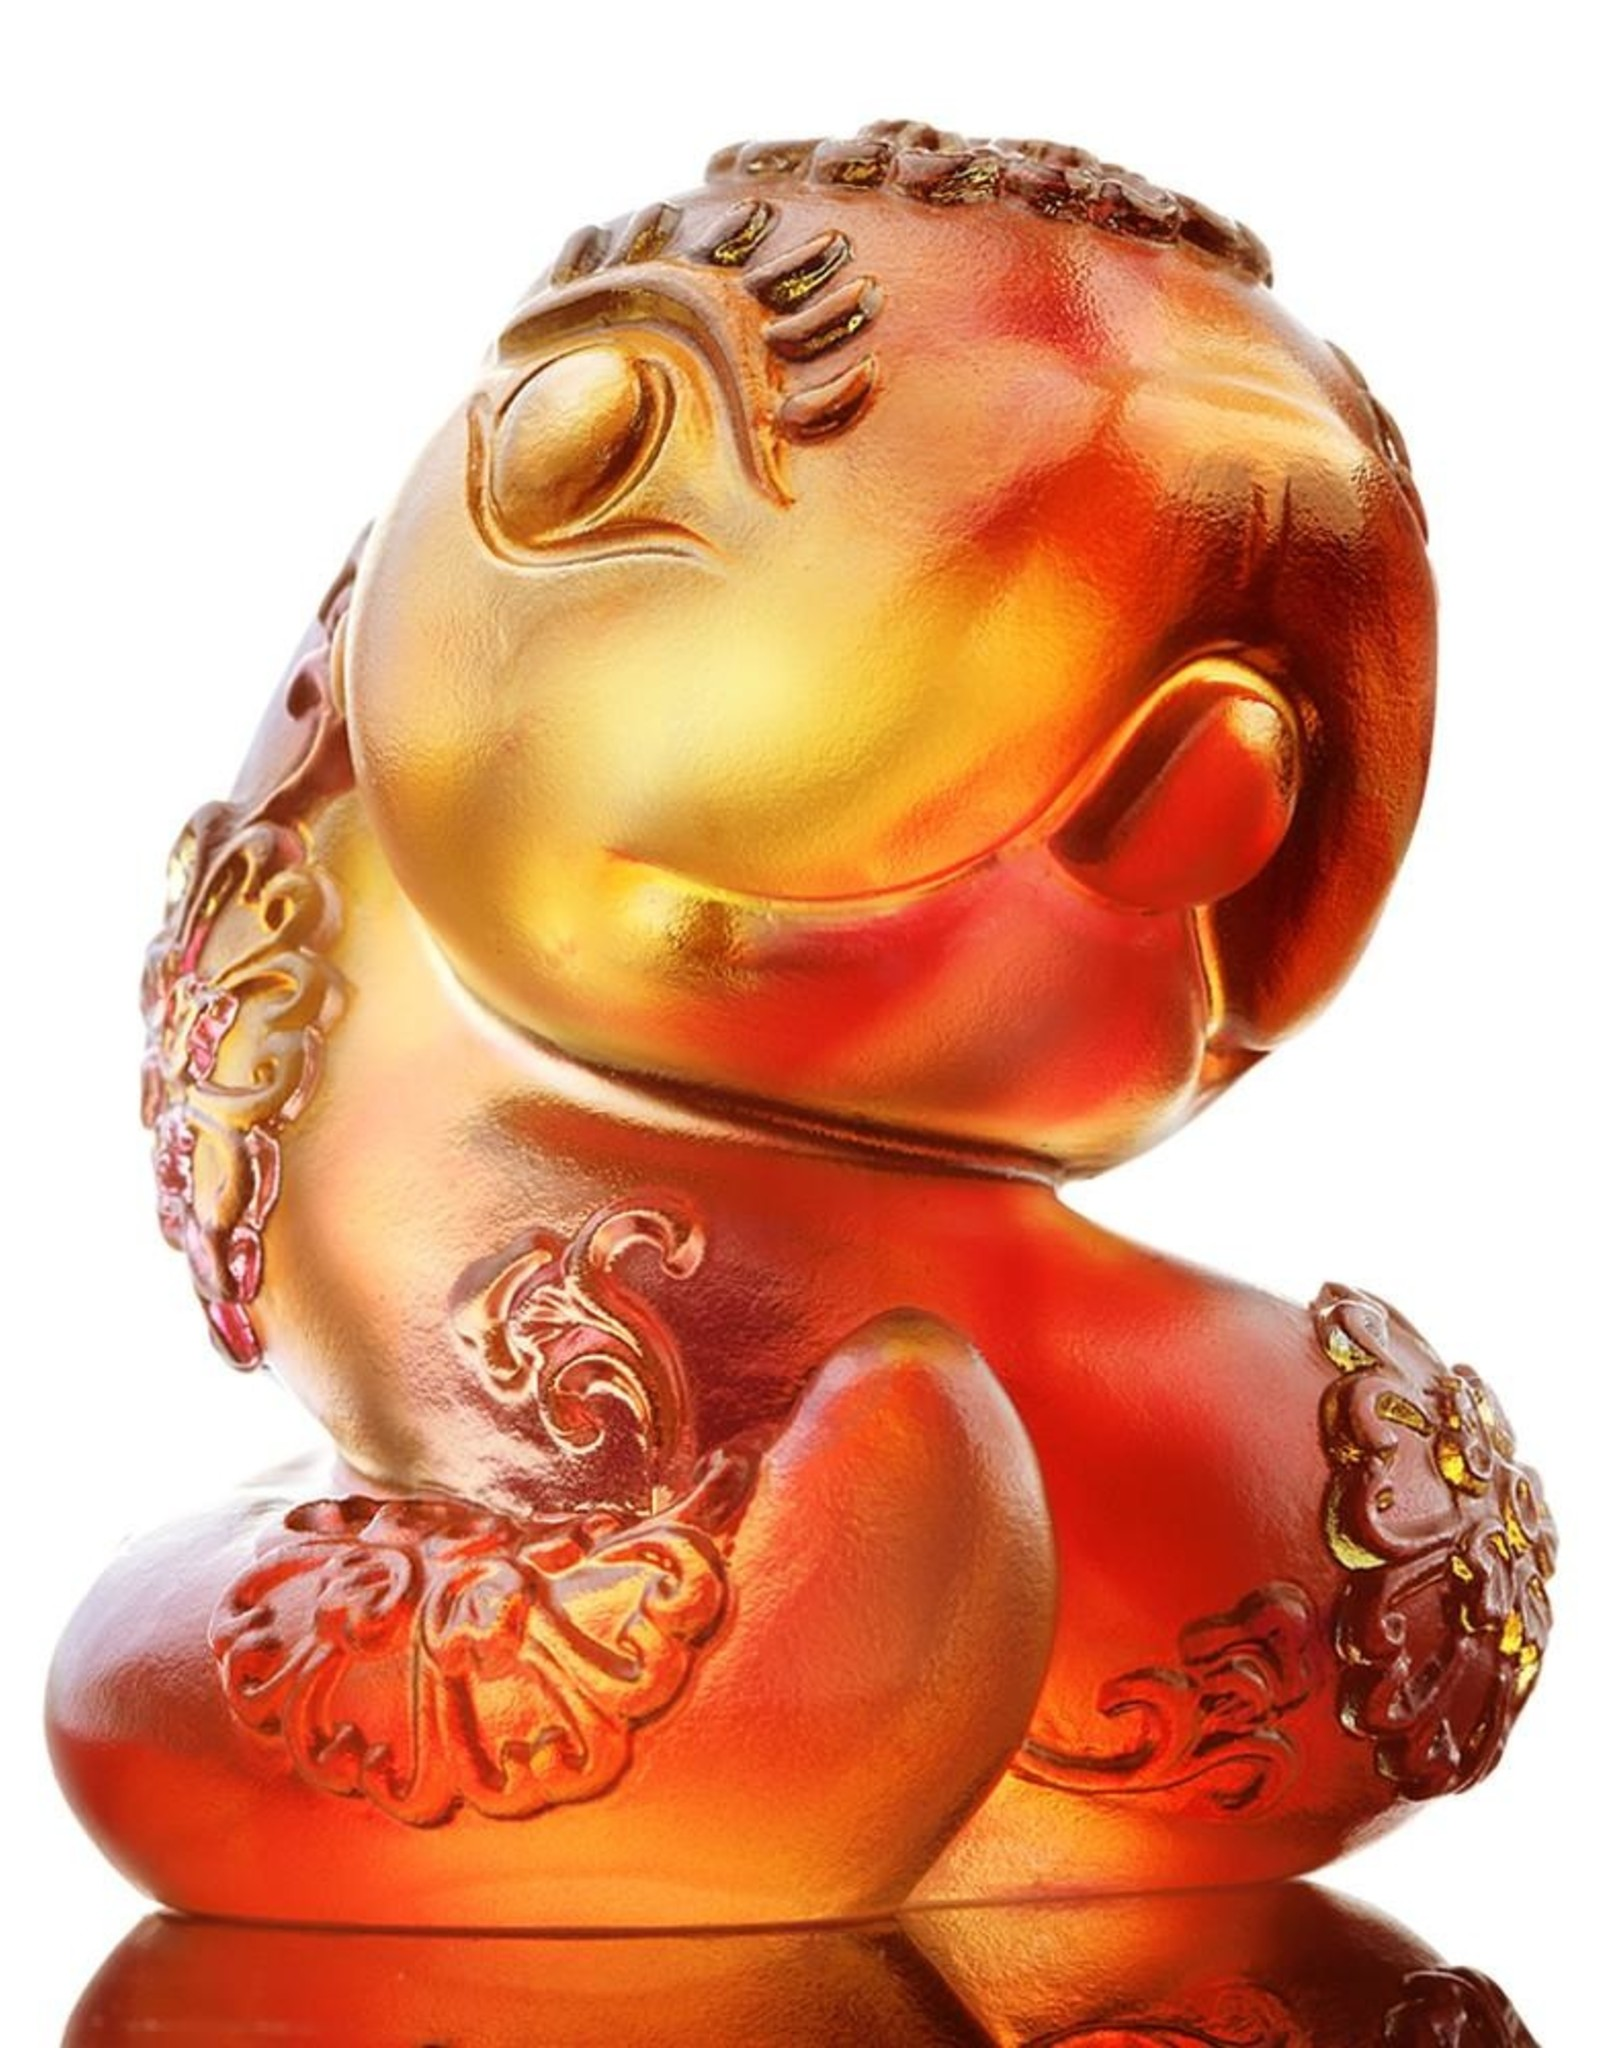 """LIULI Crystal Art Crystal Year of the Snake """"Serpentine"""" Chinese Zodiac Figurine in Amber/Gold Red (Limited Edition)"""